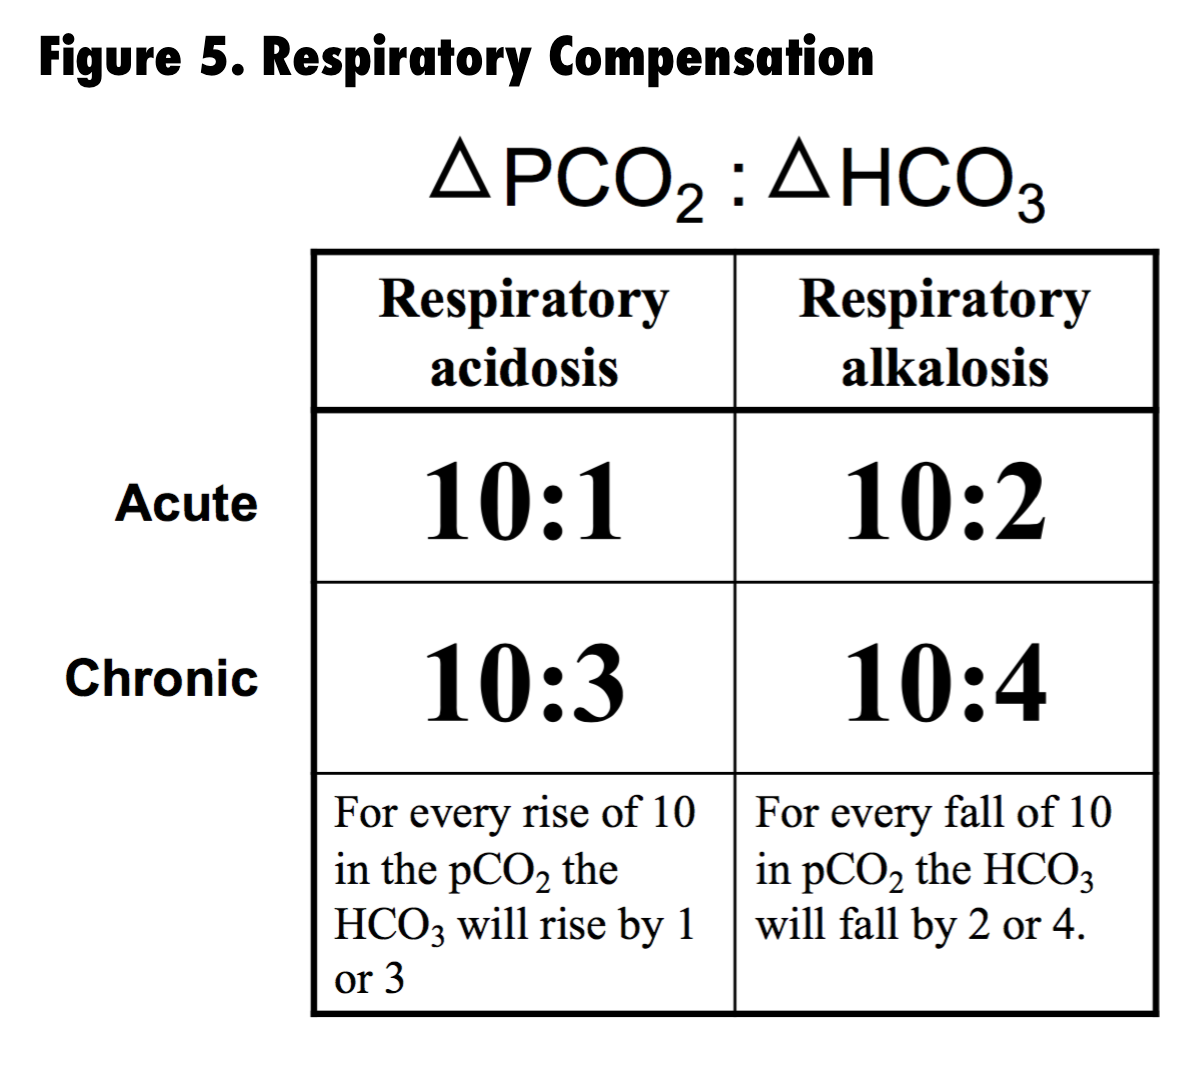 respiratory acidosis can be compensated for by _______